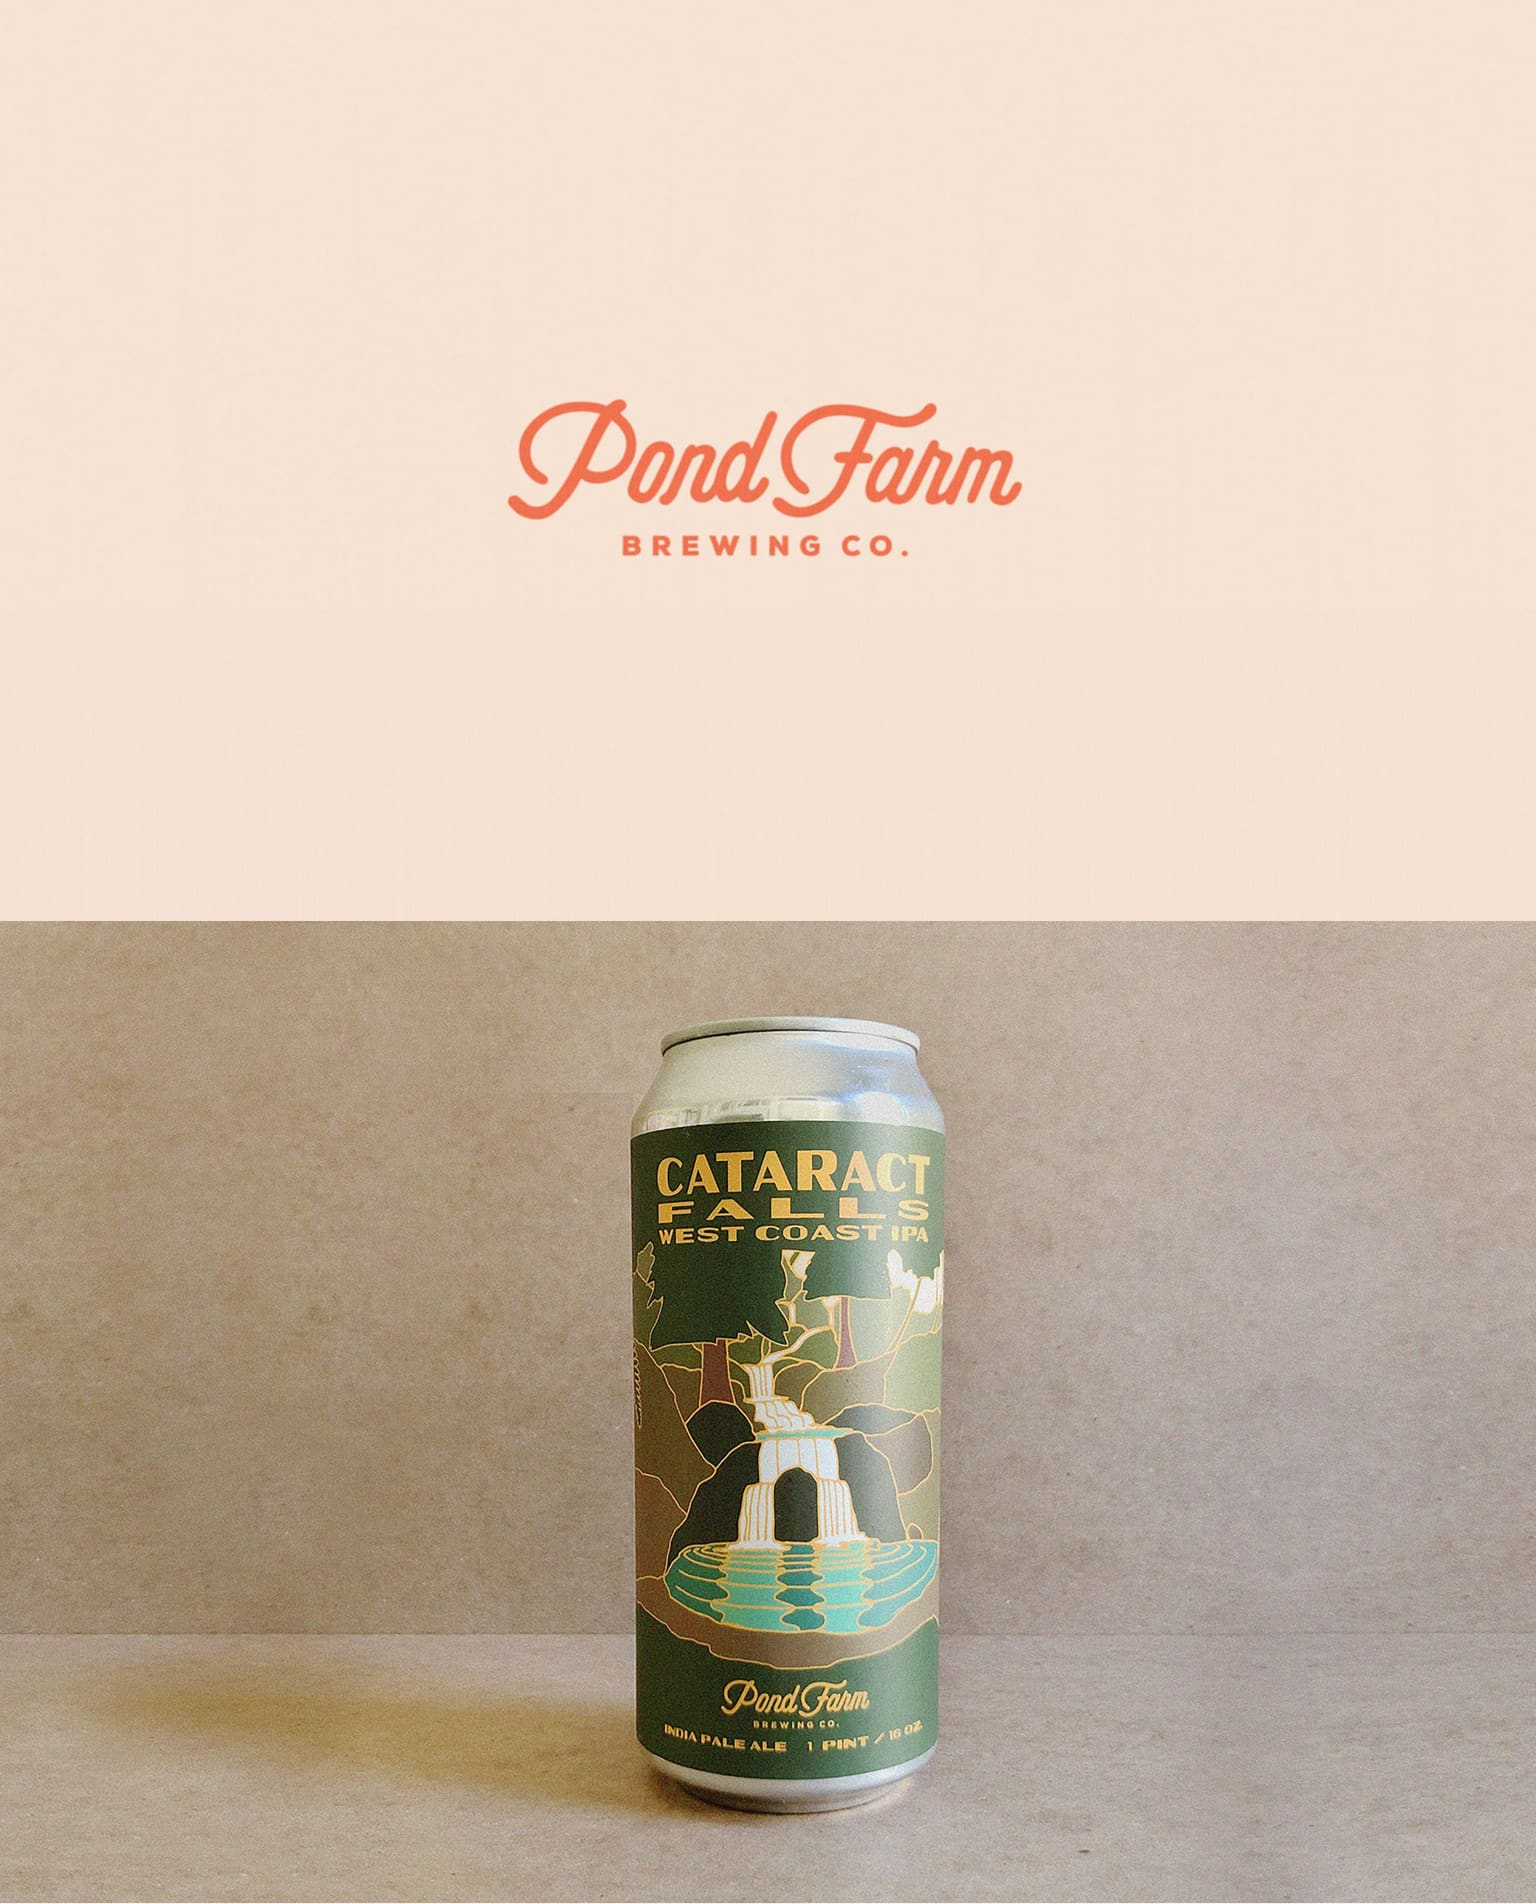 Pond Farm Brewing Co. Branding